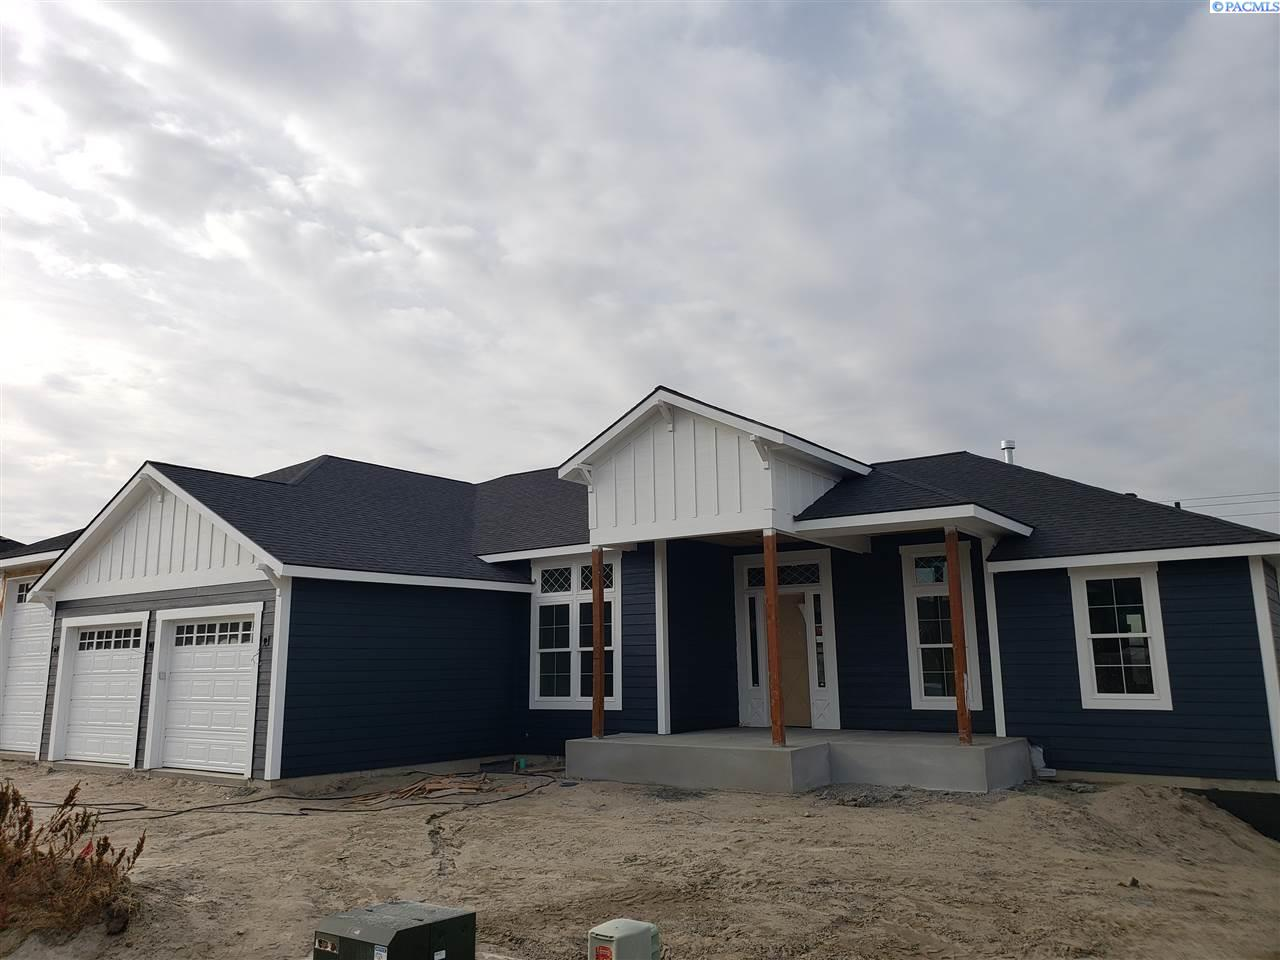 Single Family Homes for Sale at 729 S Pittsburgh Street Kennewick, Washington 99336 United States